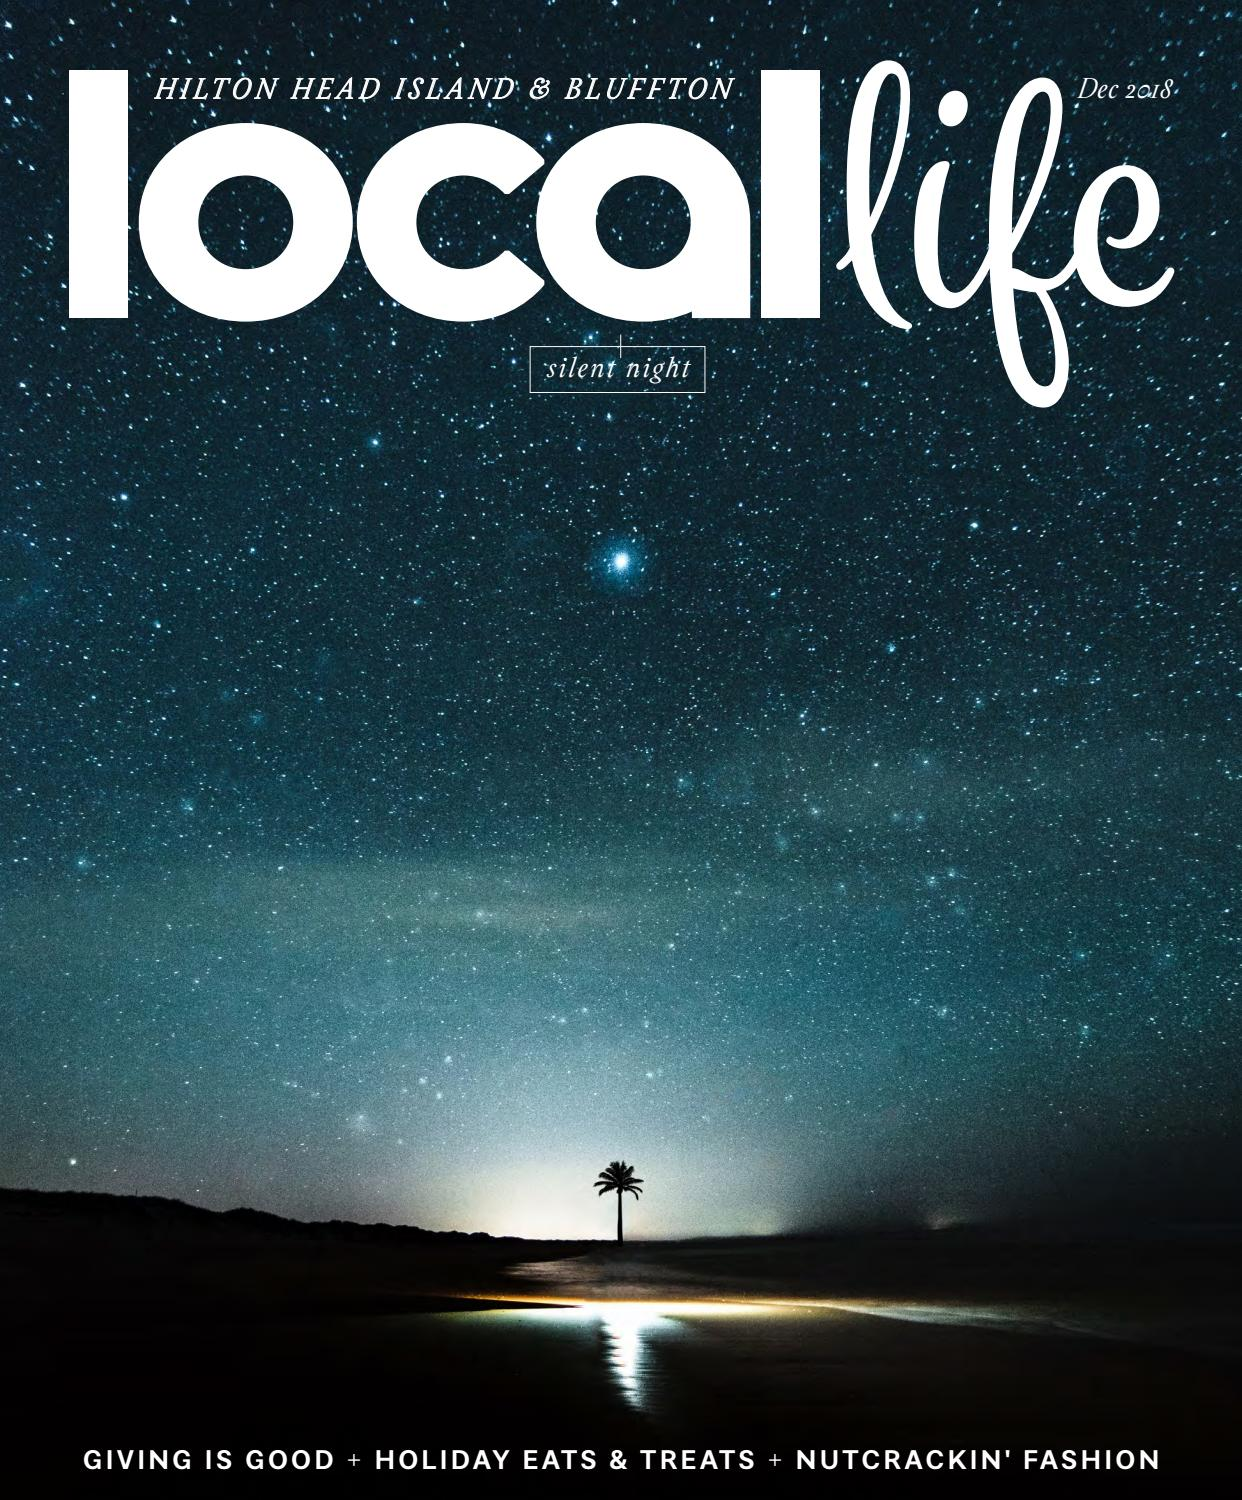 Local Life Magazine December 2018 by LocalLife - issuu 65a3d26a36eb8